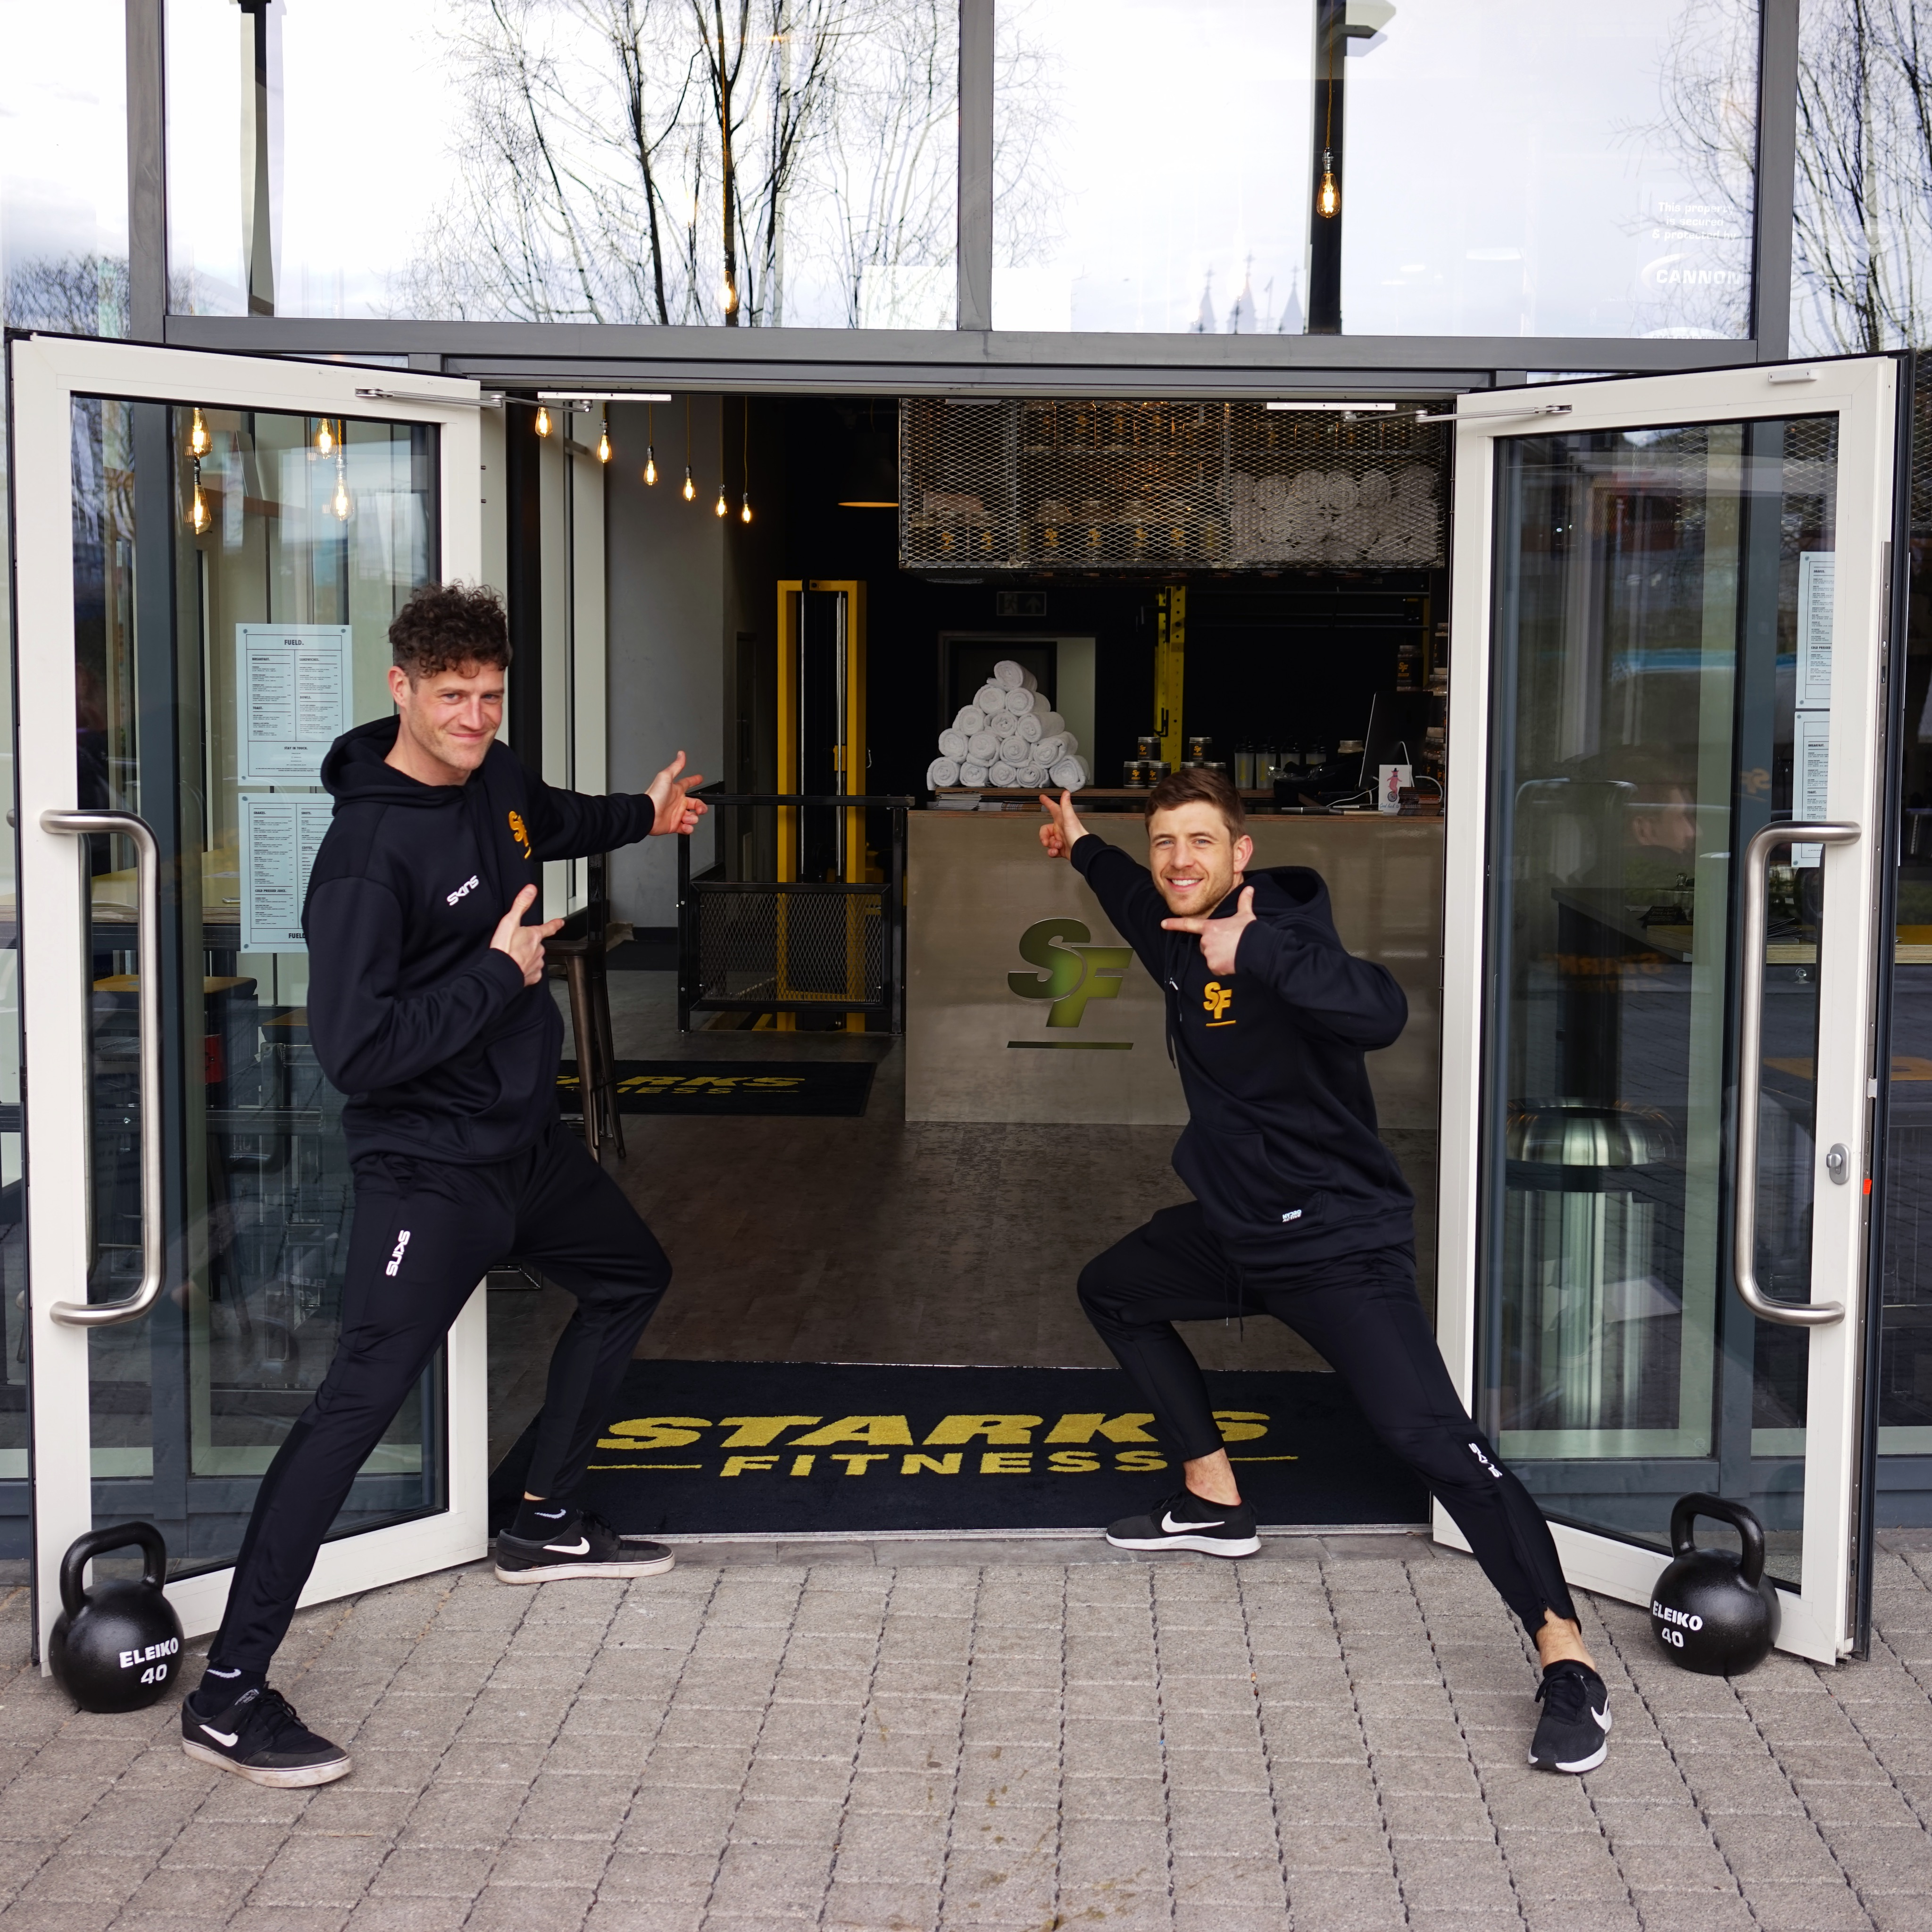 welcome-to-starks-fitness-bristol